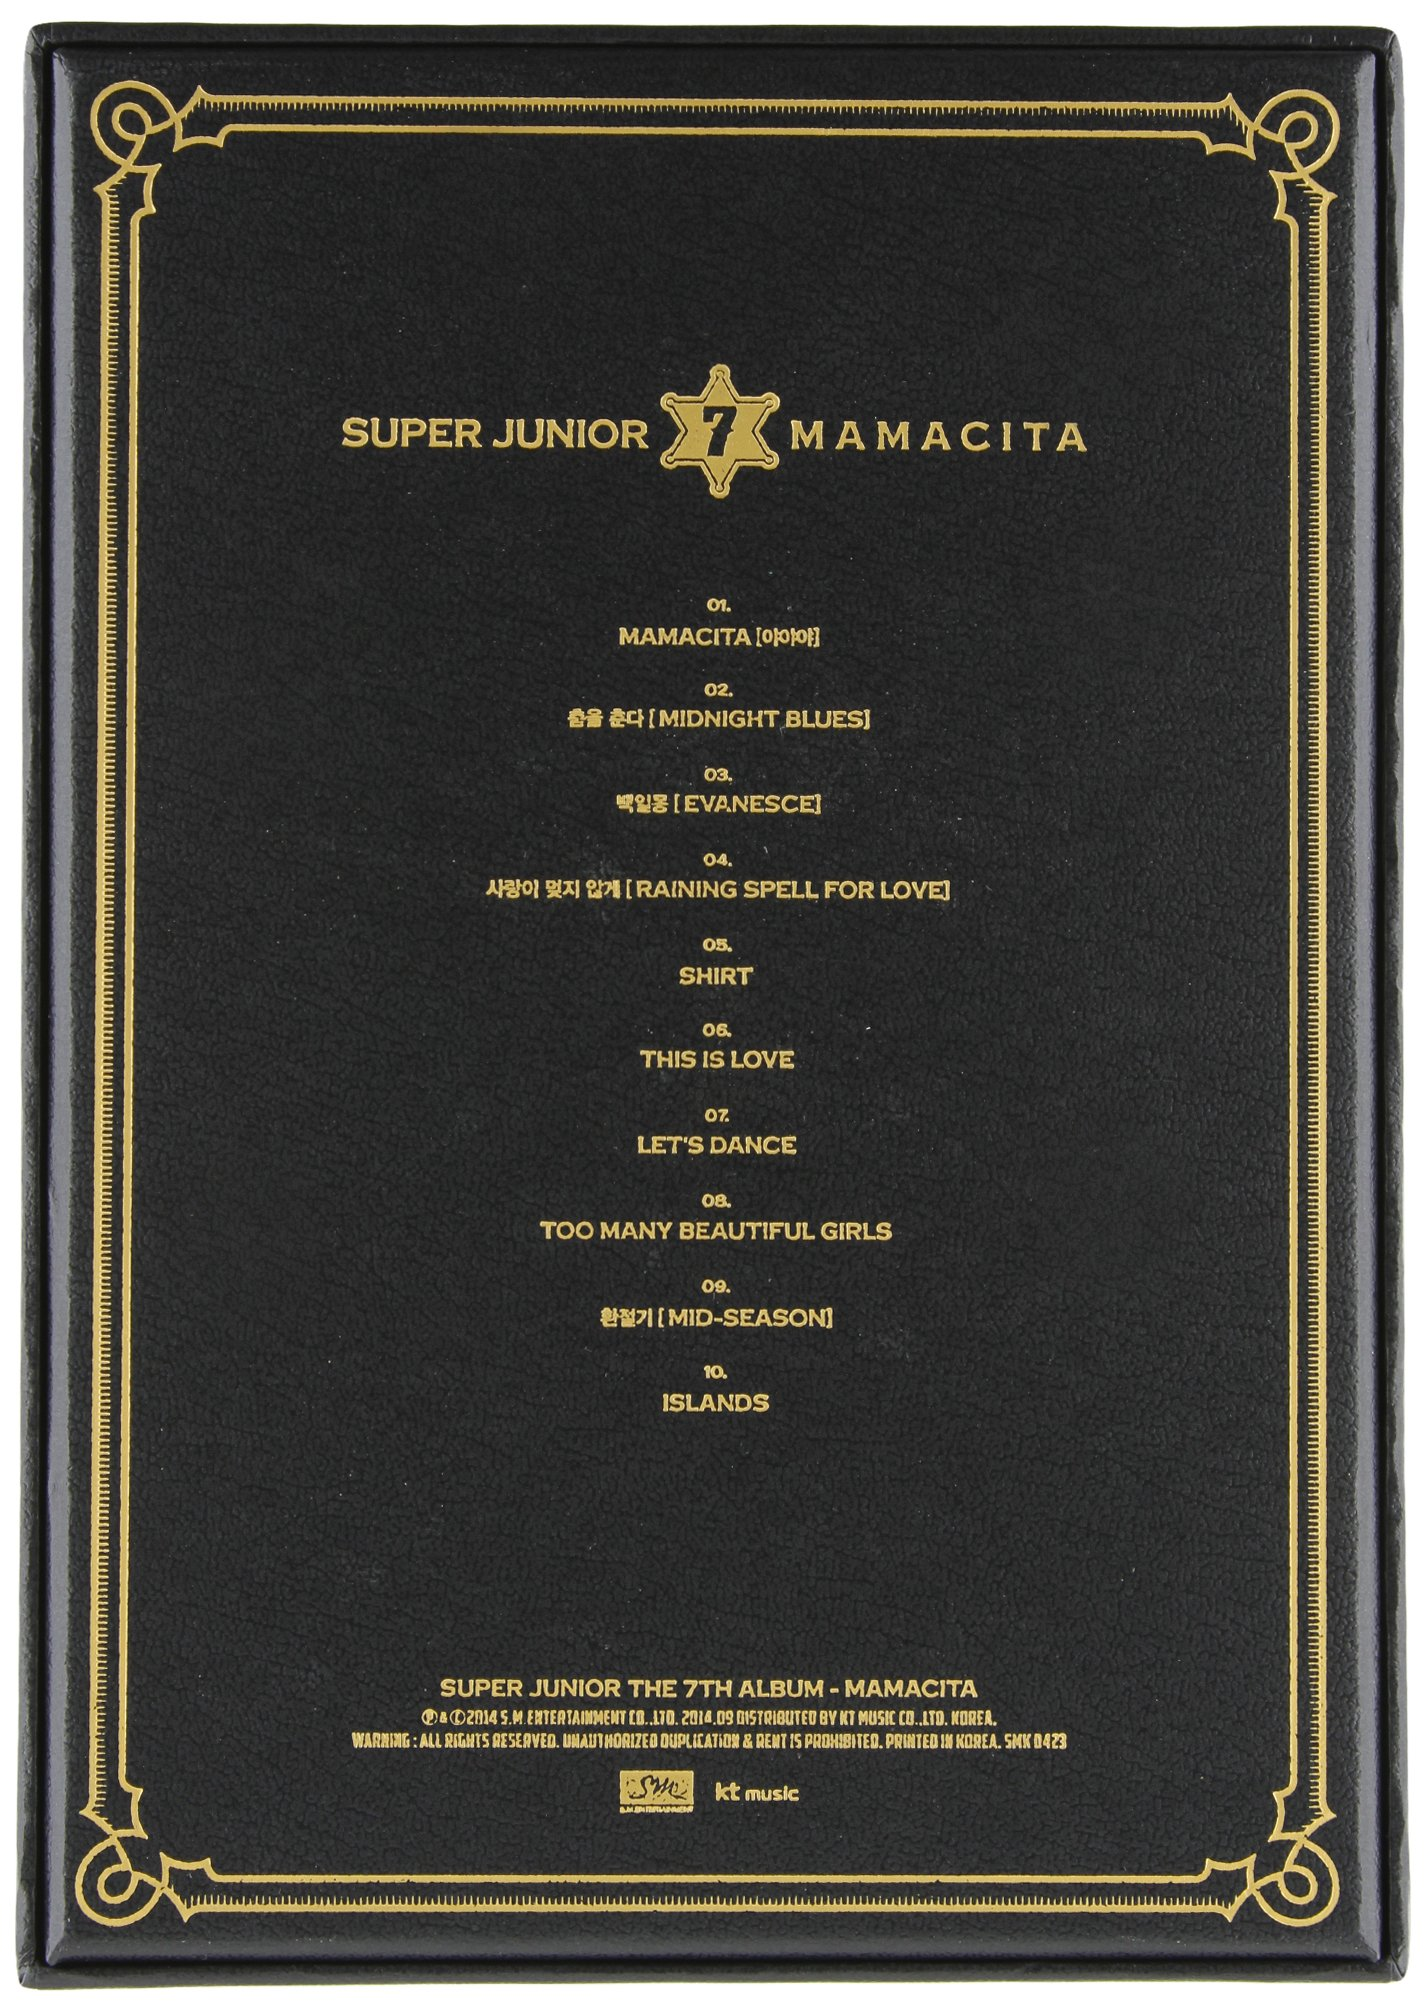 Super Junior - Vol.7 [MAMACITA] by SM entertainment